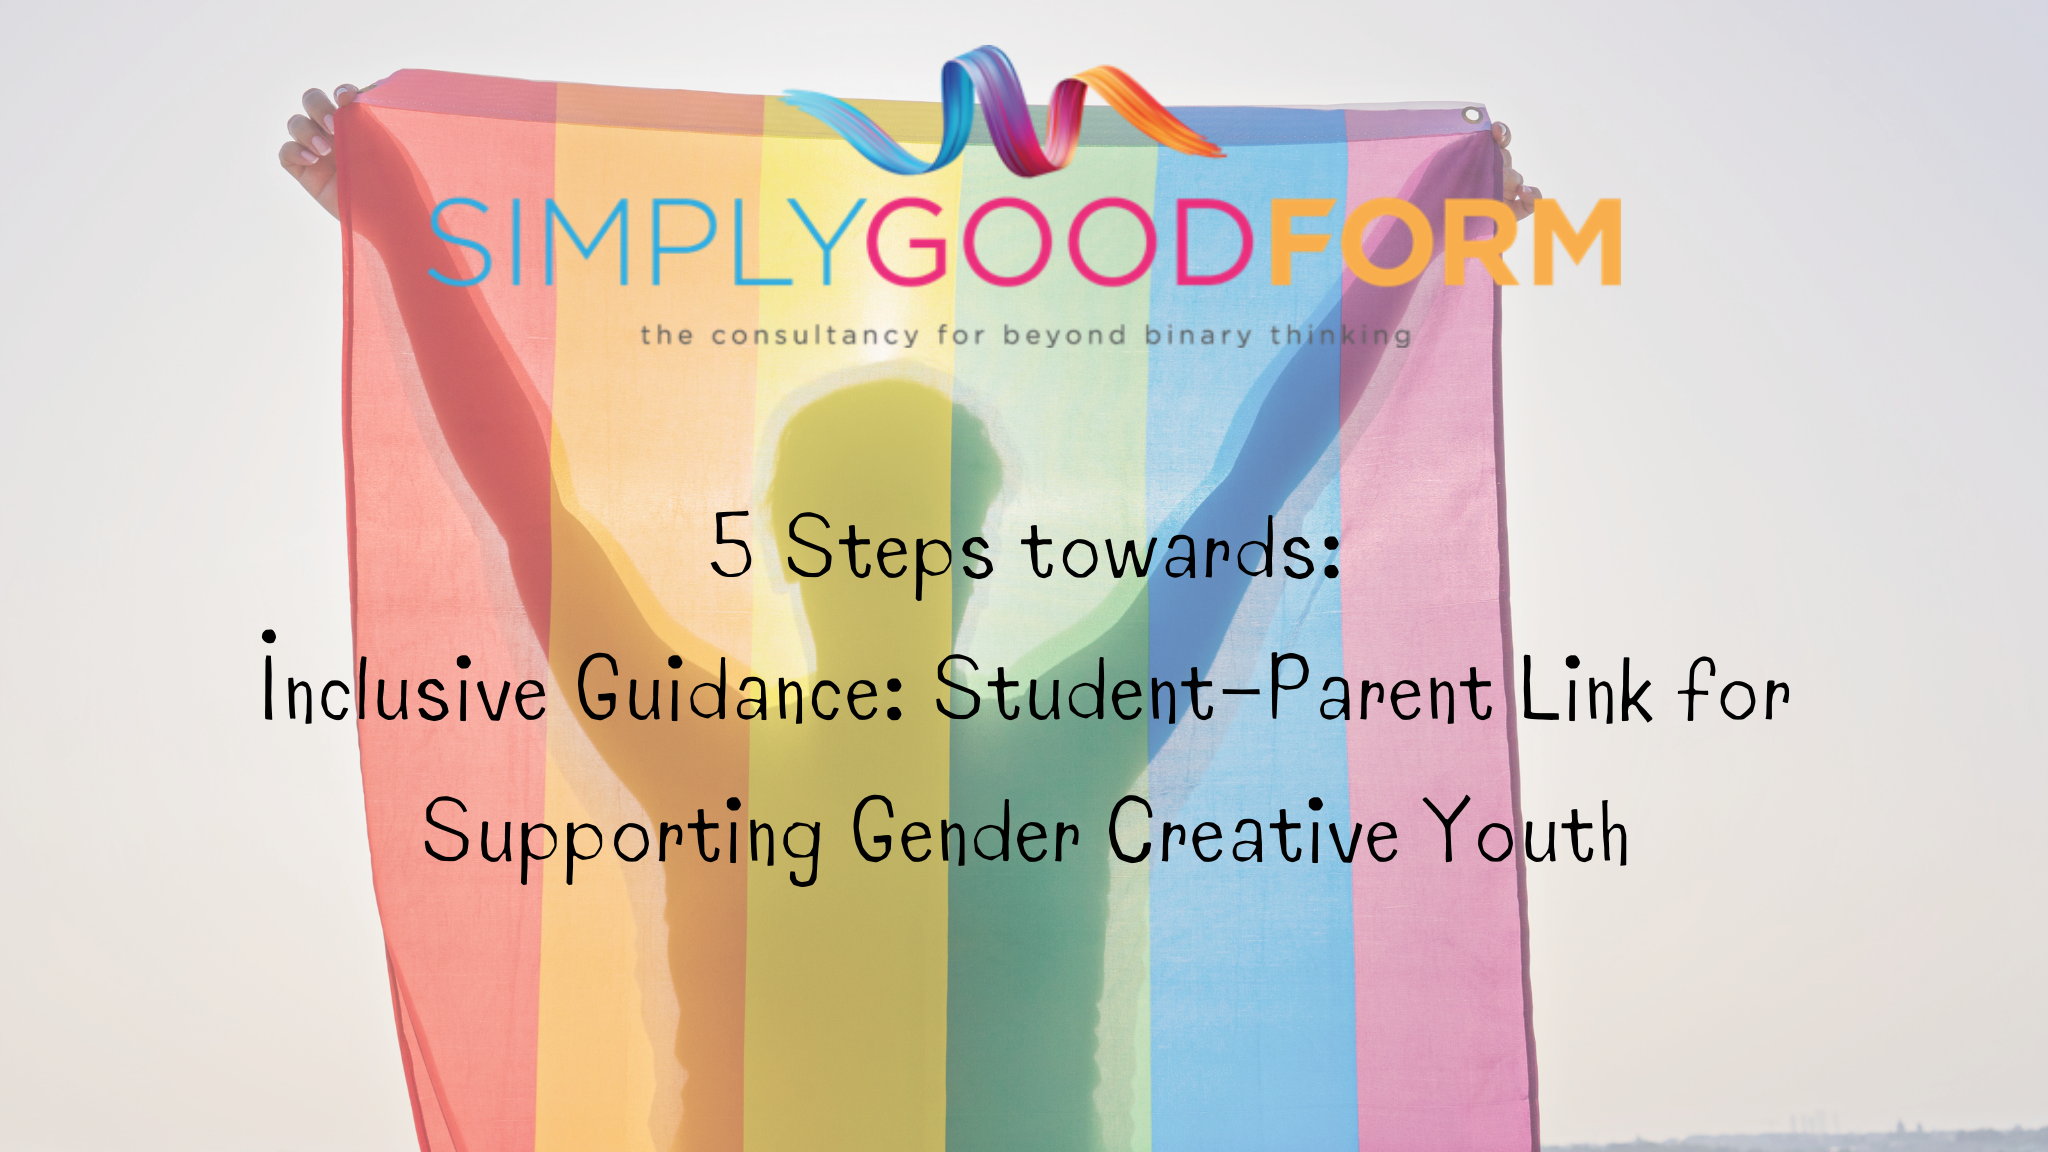 Inclusive Guidance Counselling: Student-Parent Link for Supporting Gender Creative Youth